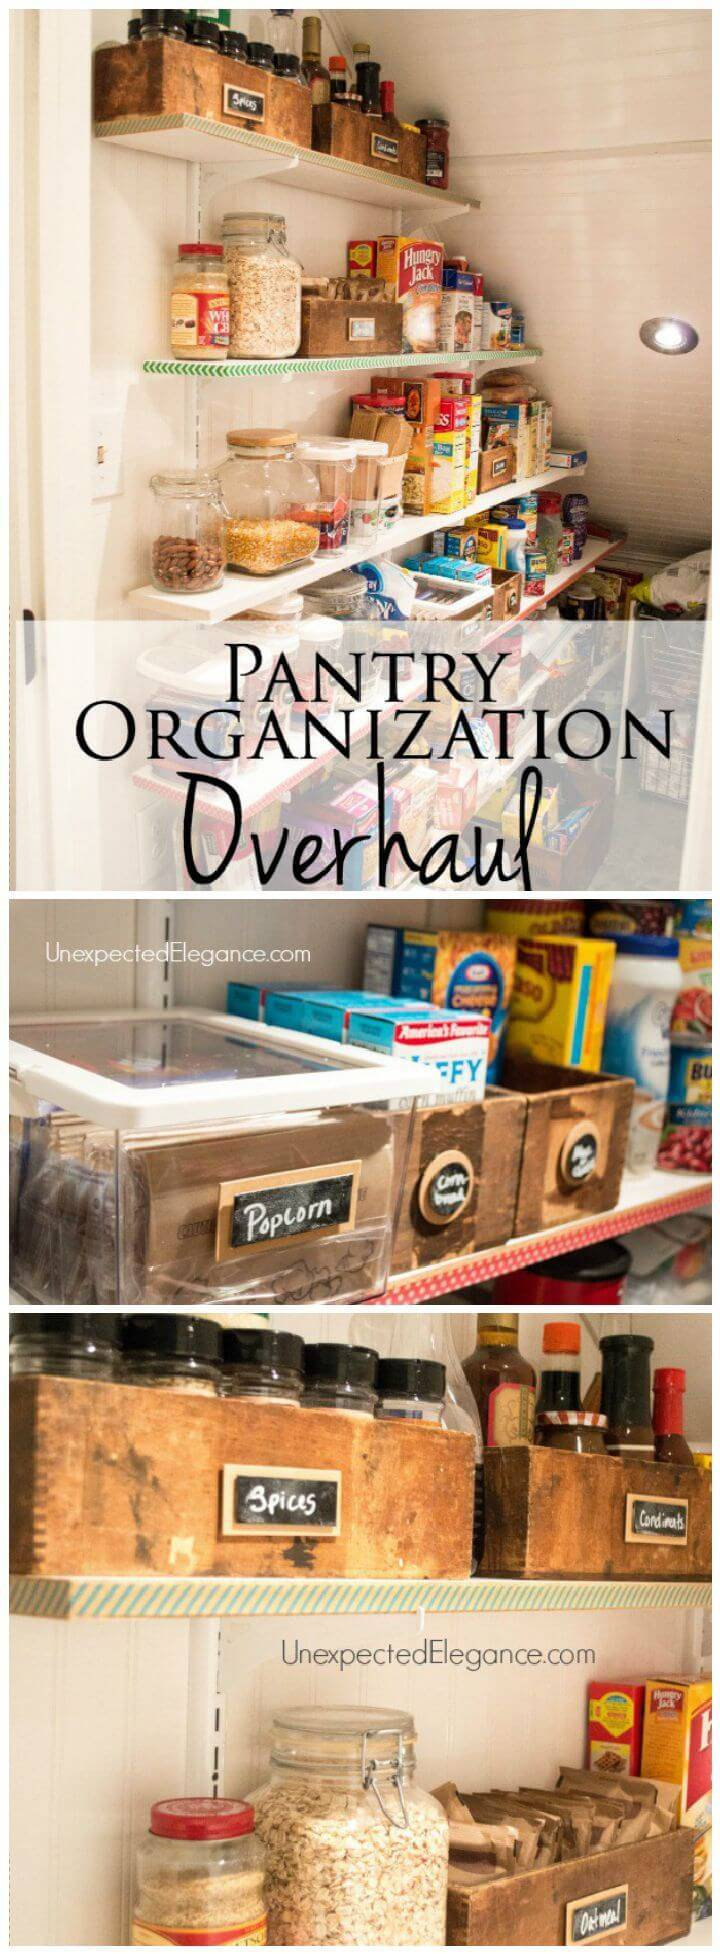 Pantry Organization Overhaul